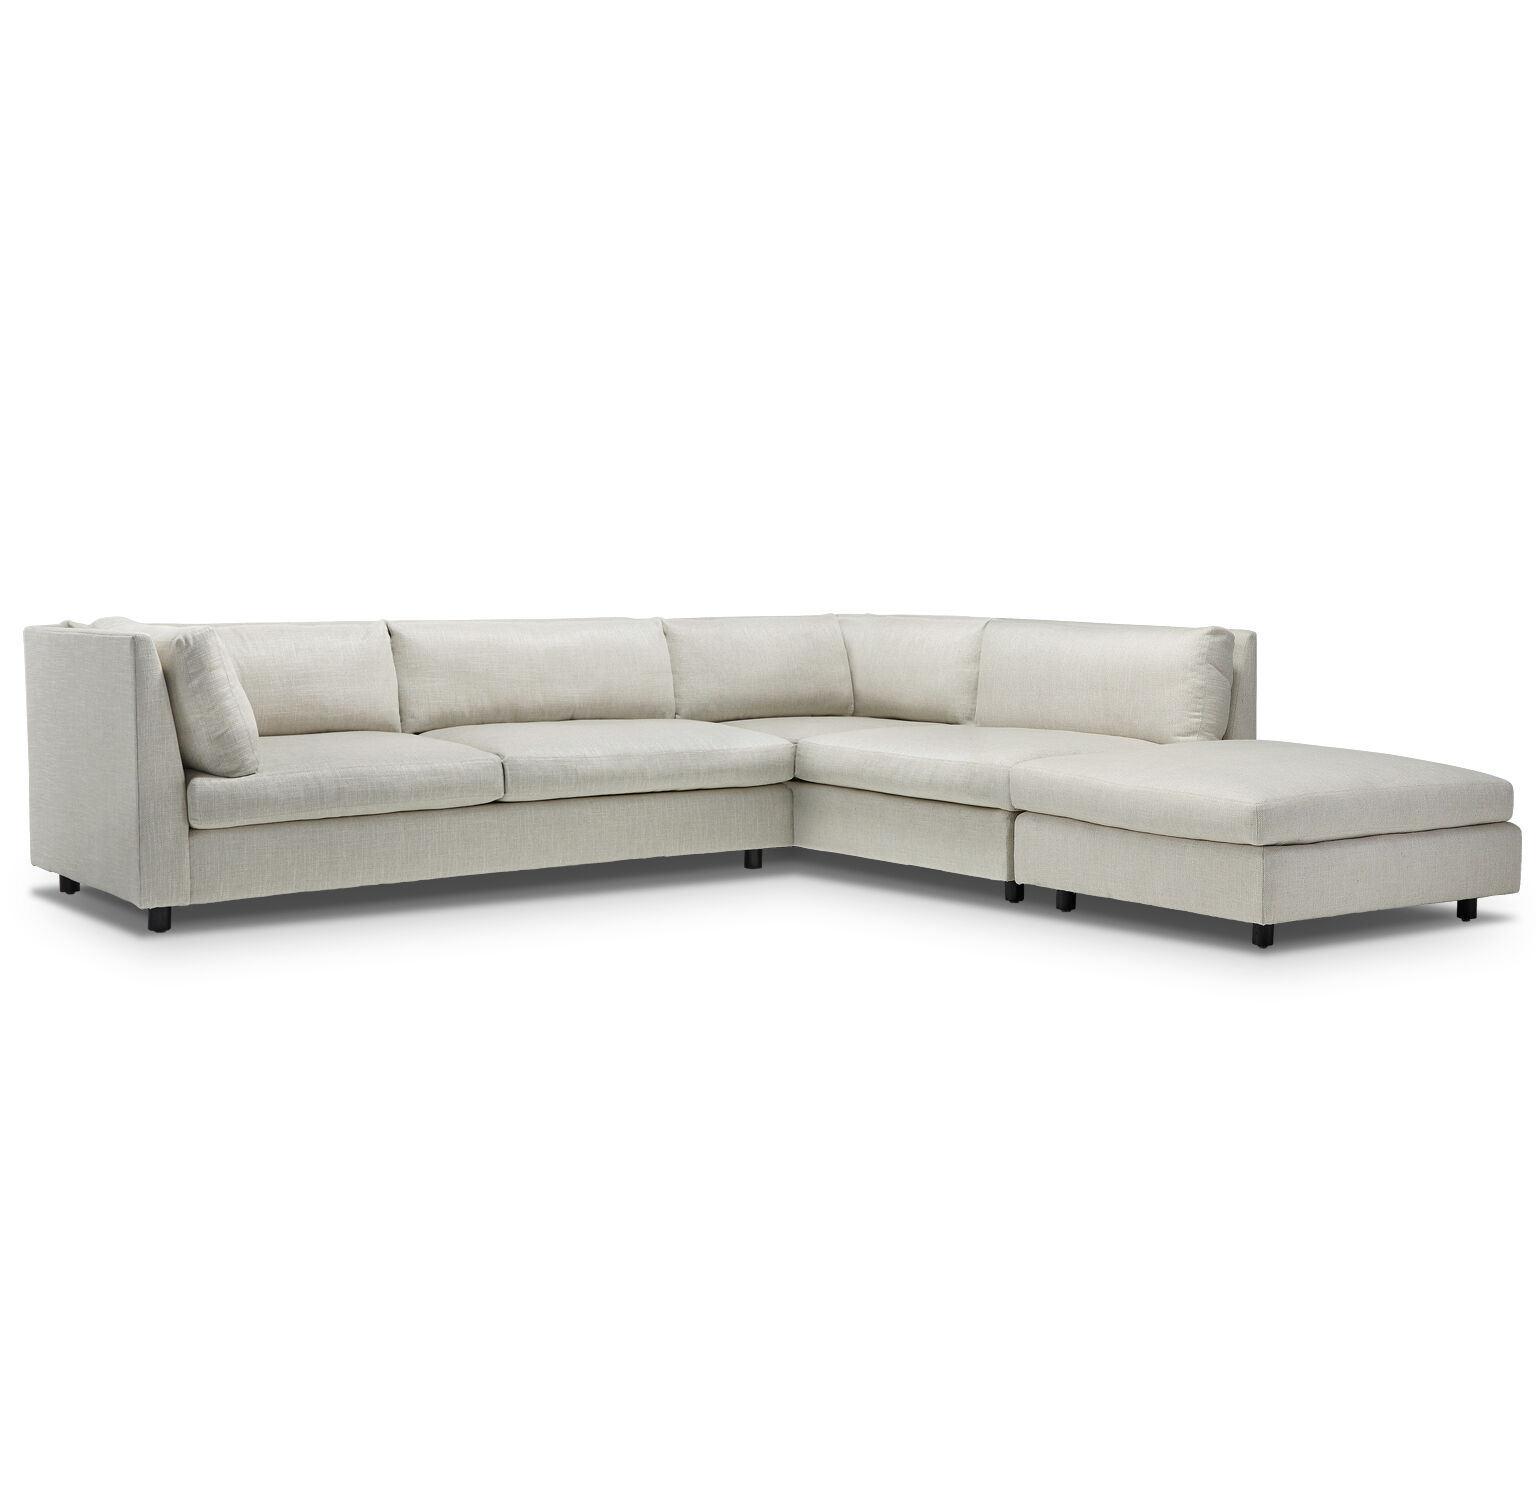 dunham sofa ashford next leather franco sectional